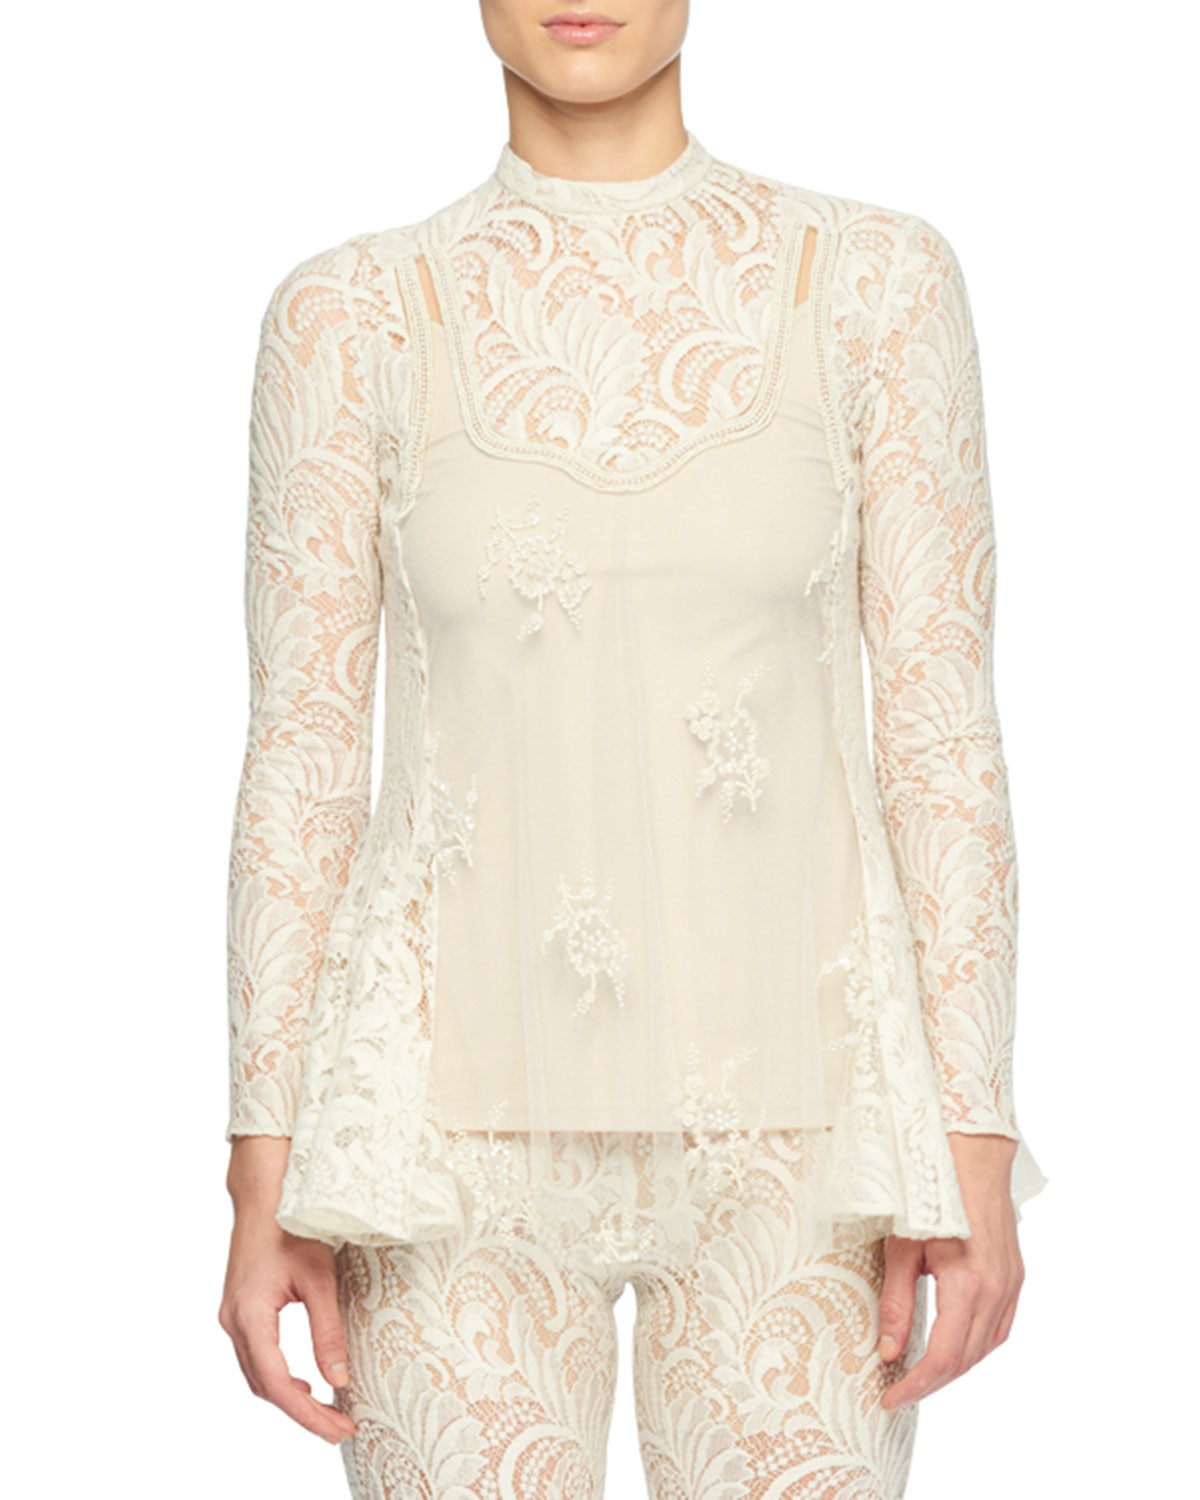 Embellished Paneled Wool-Blend Lace And Tulle Blouse in Neutrals